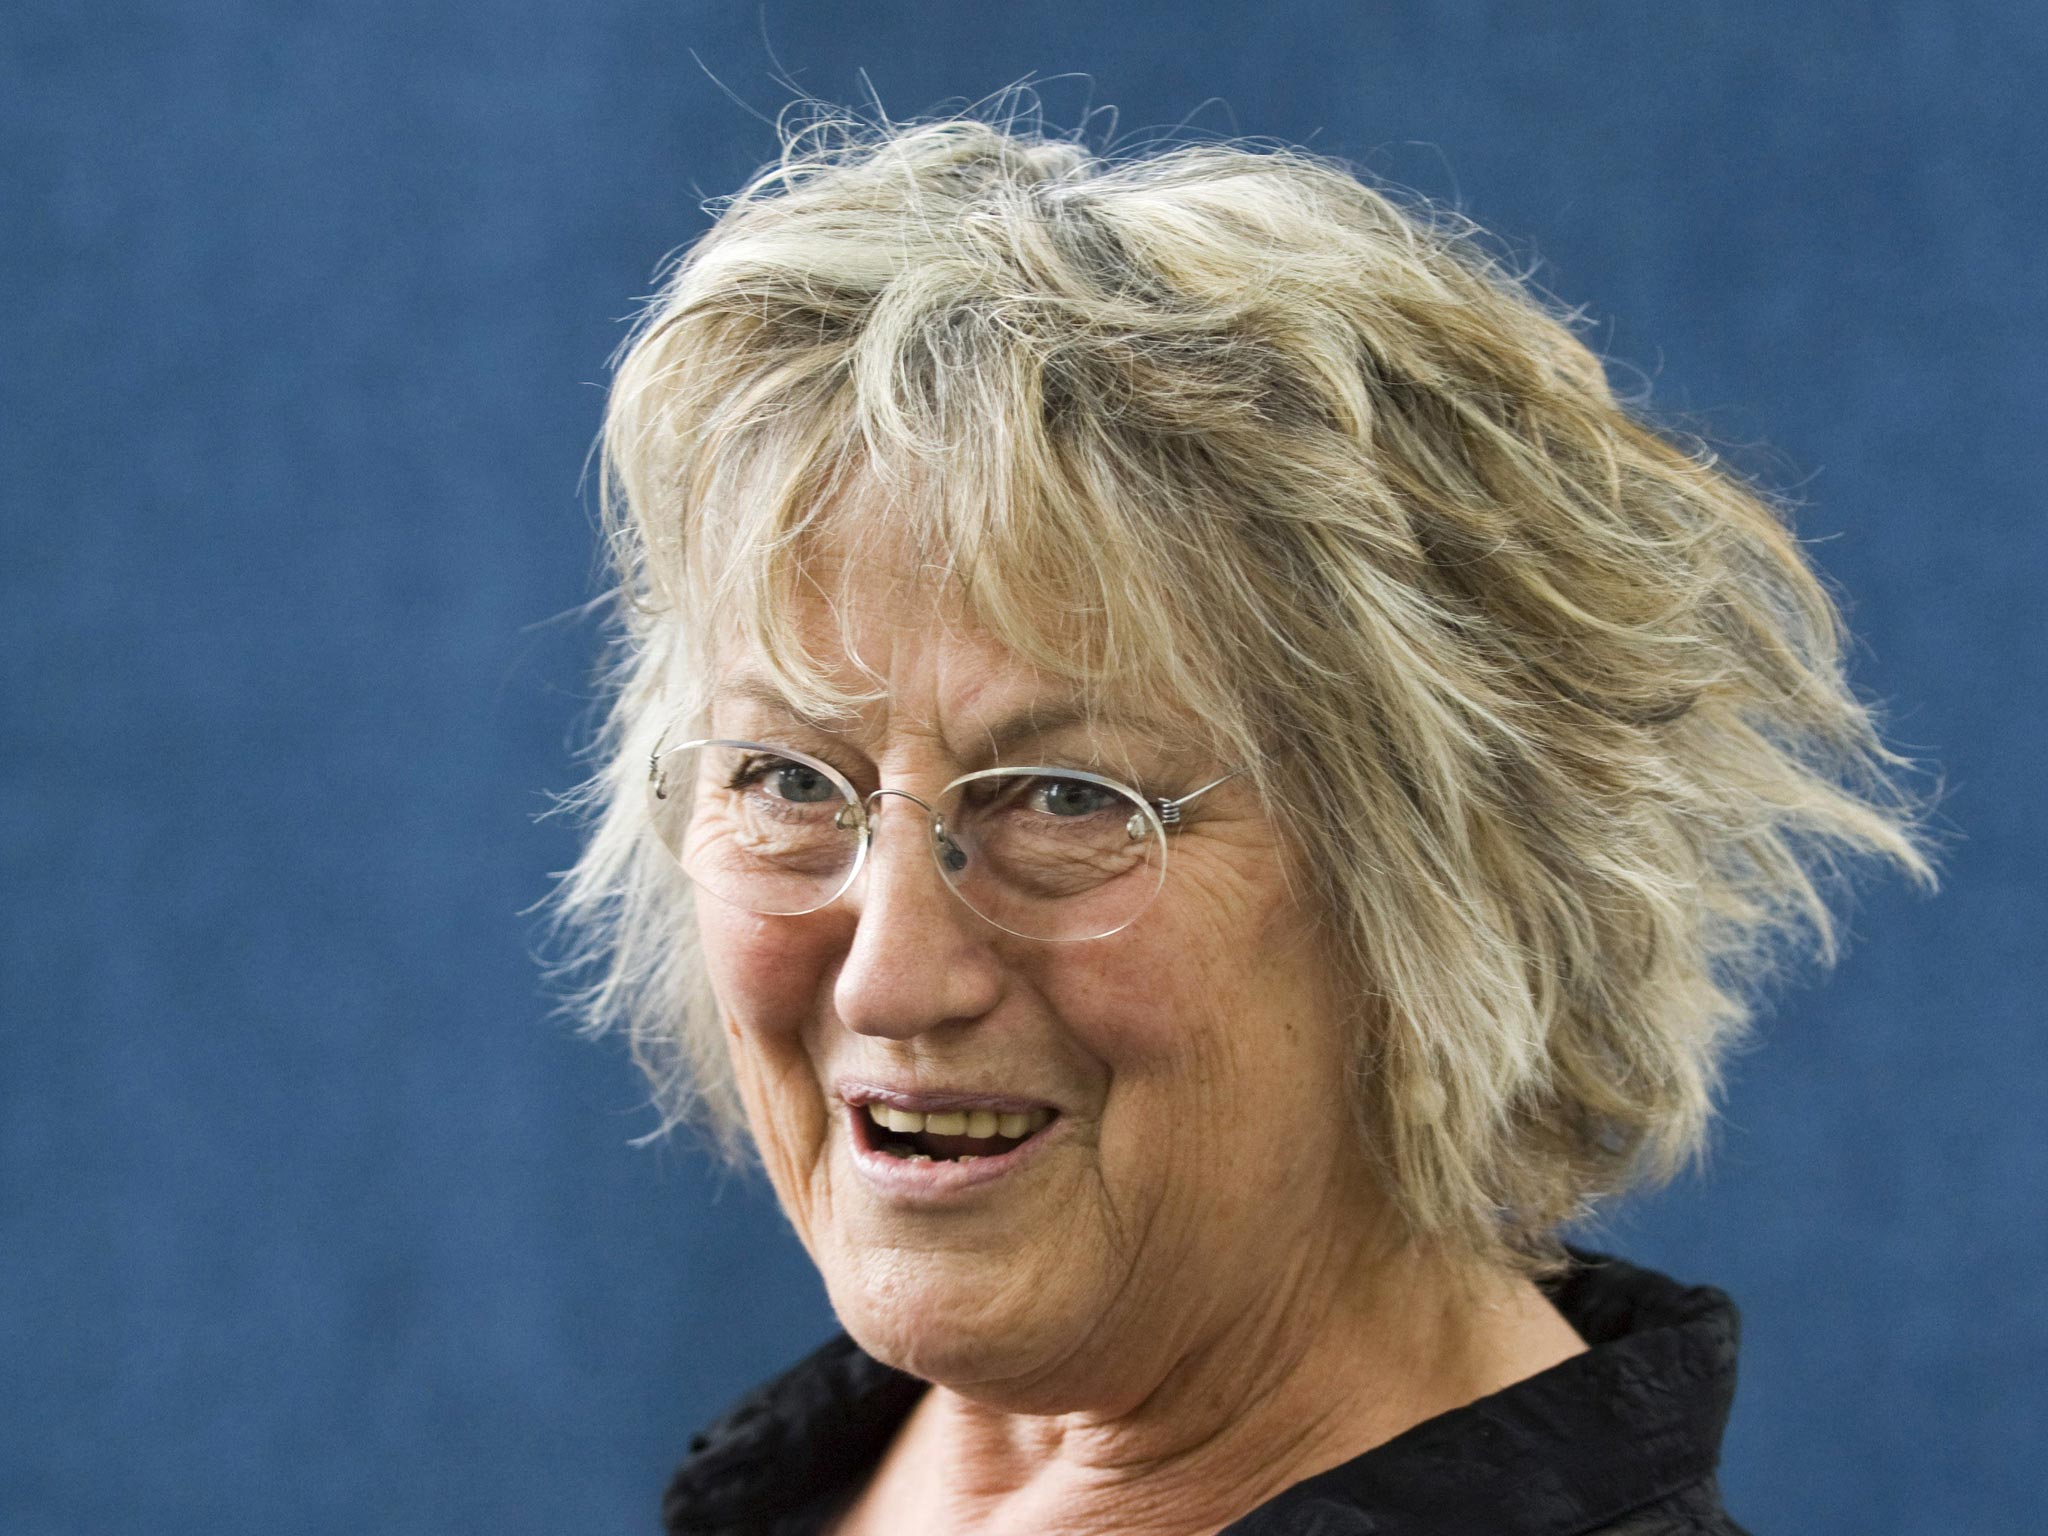 germaine greer - photo #31